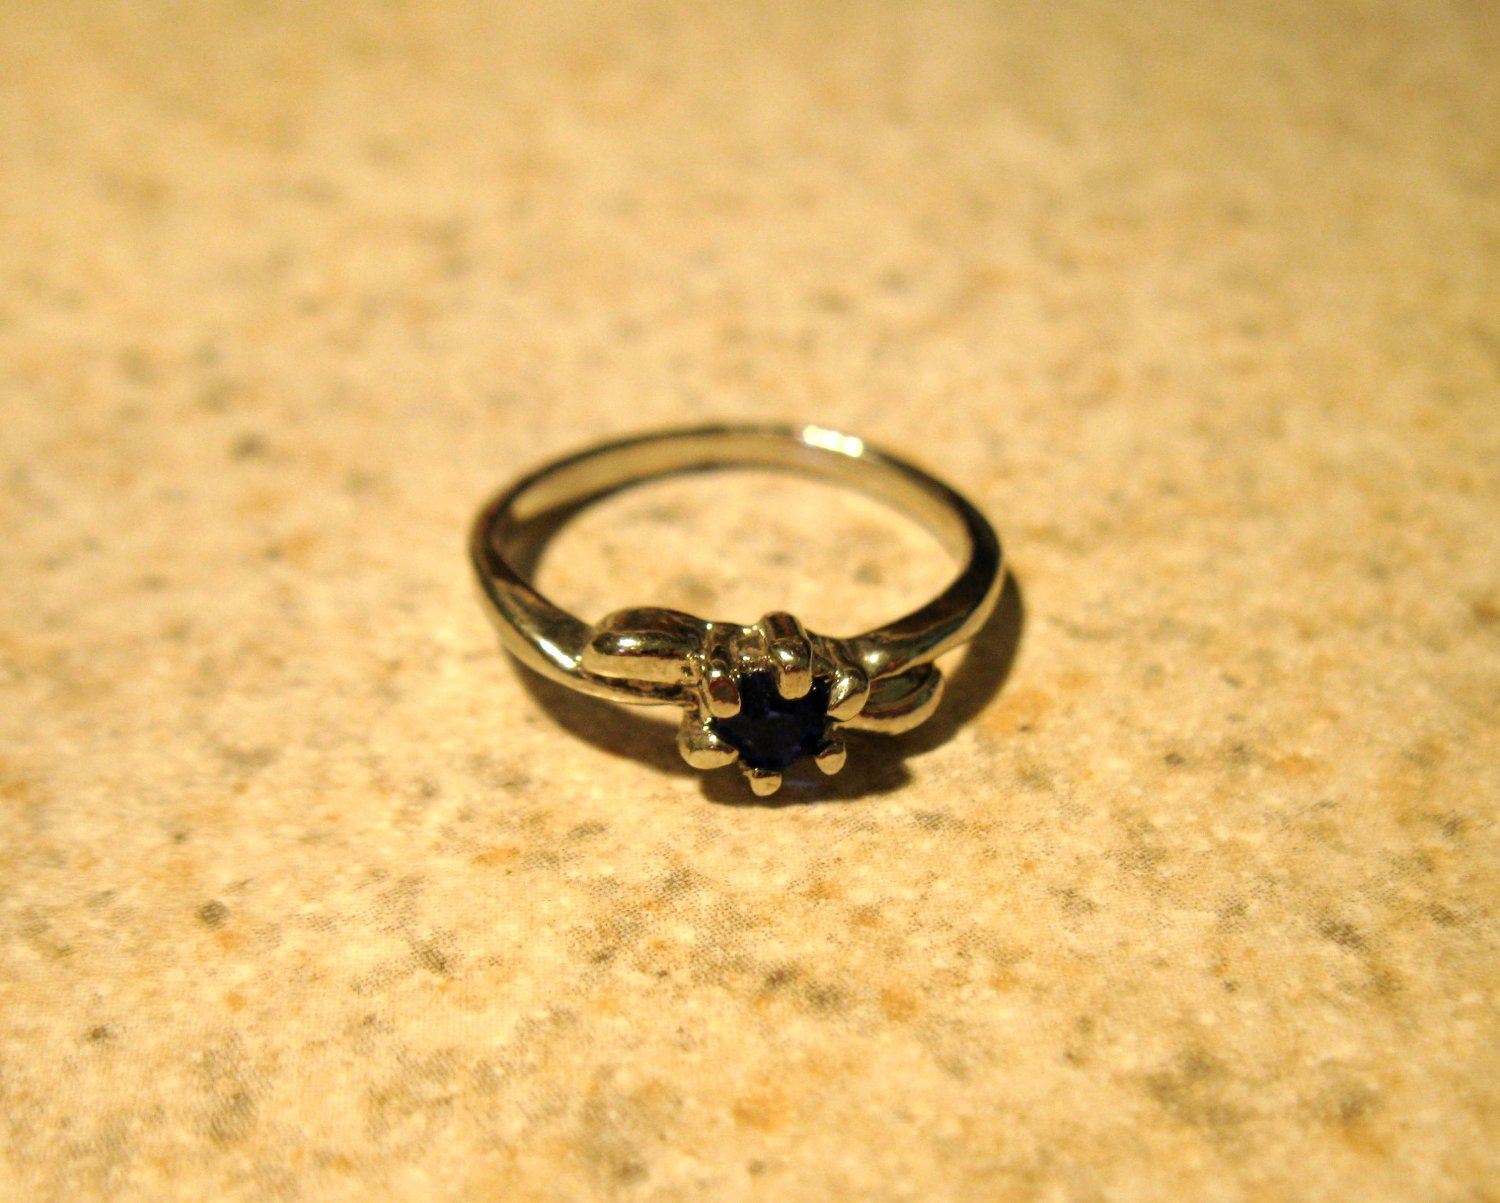 Lovely Blue Sapphire Solitaire Ring Size 5.5 New! #777